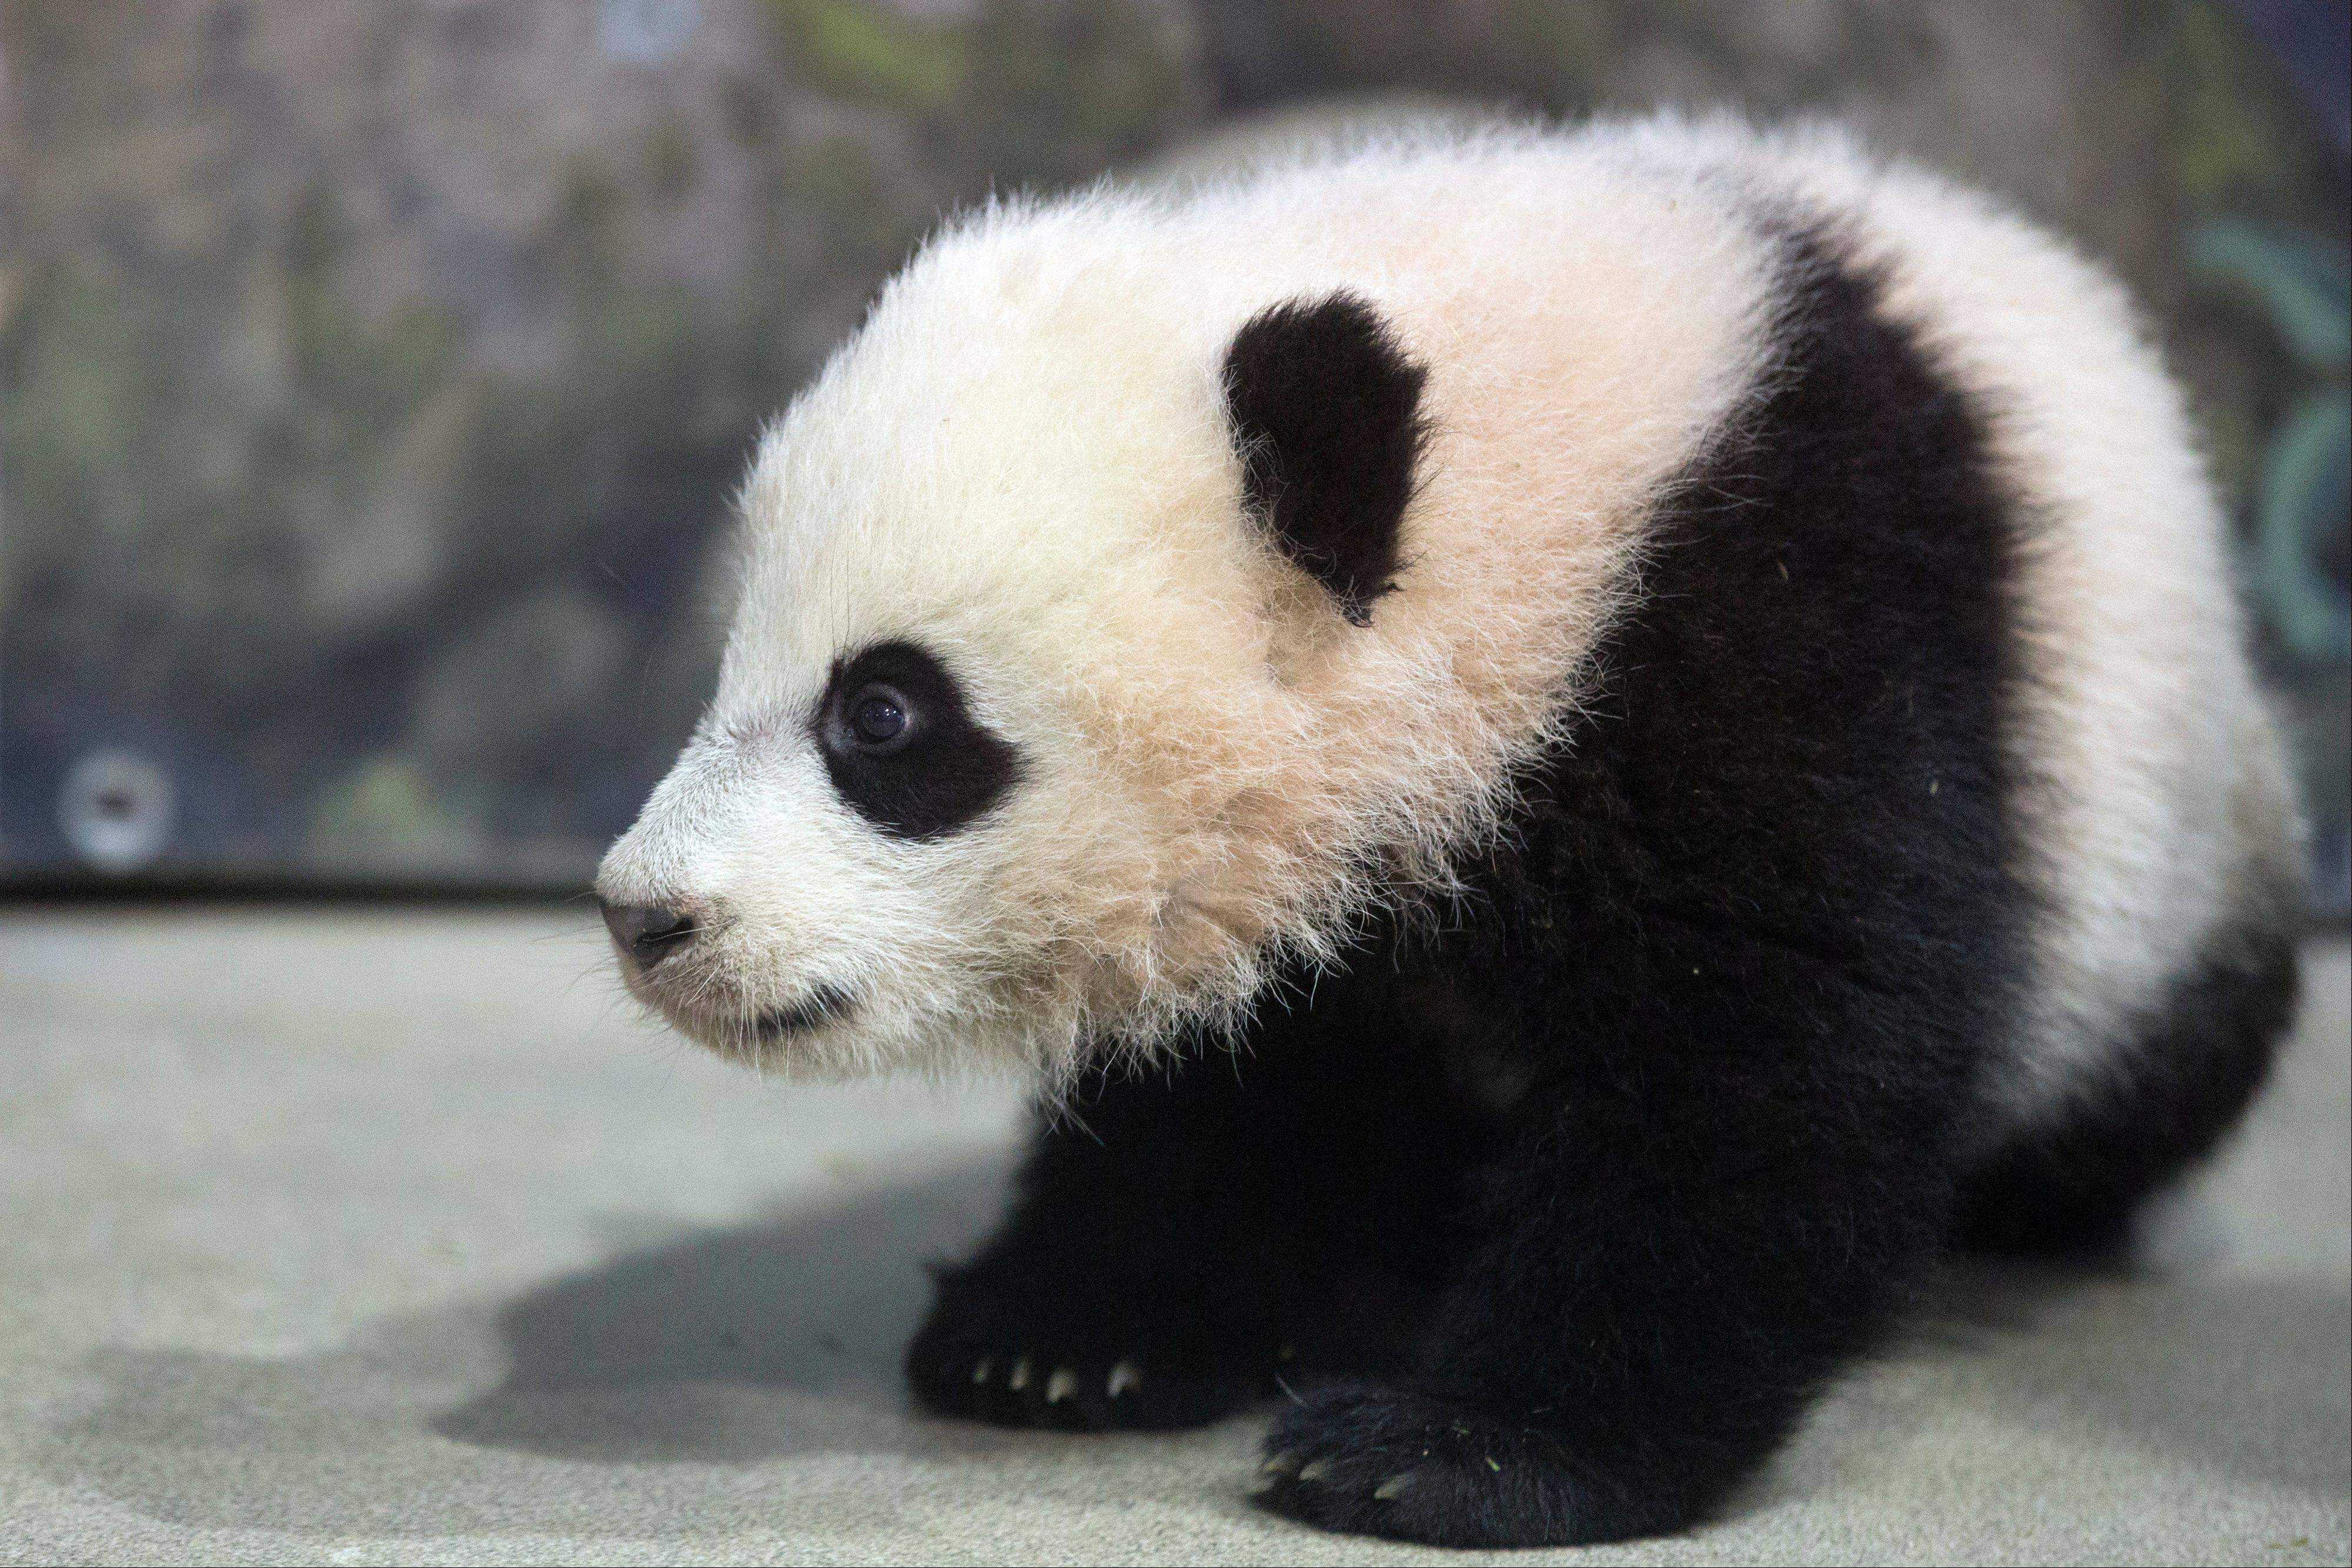 Bao Bao, the four and a half month old giant panda cub, sits in her indoor habitat at the Smithsonian�s National Zoo in Washington. Saturday was the first chance for the public to see the 5-month-old cub.